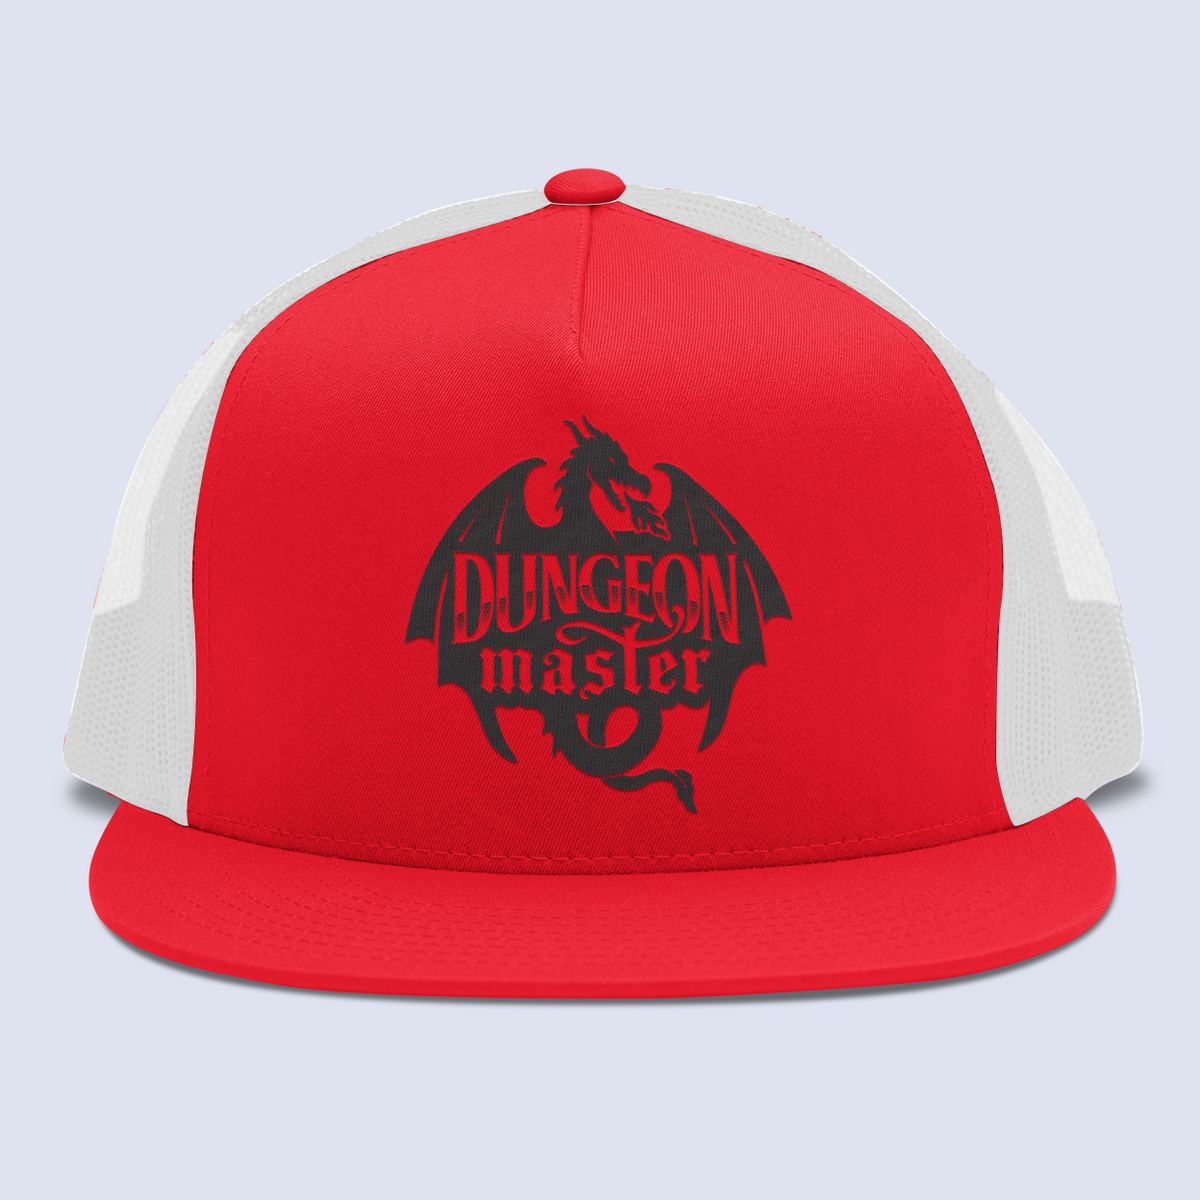 Dungeon Master Dragon Emblem Flat Bill Trucker Hat